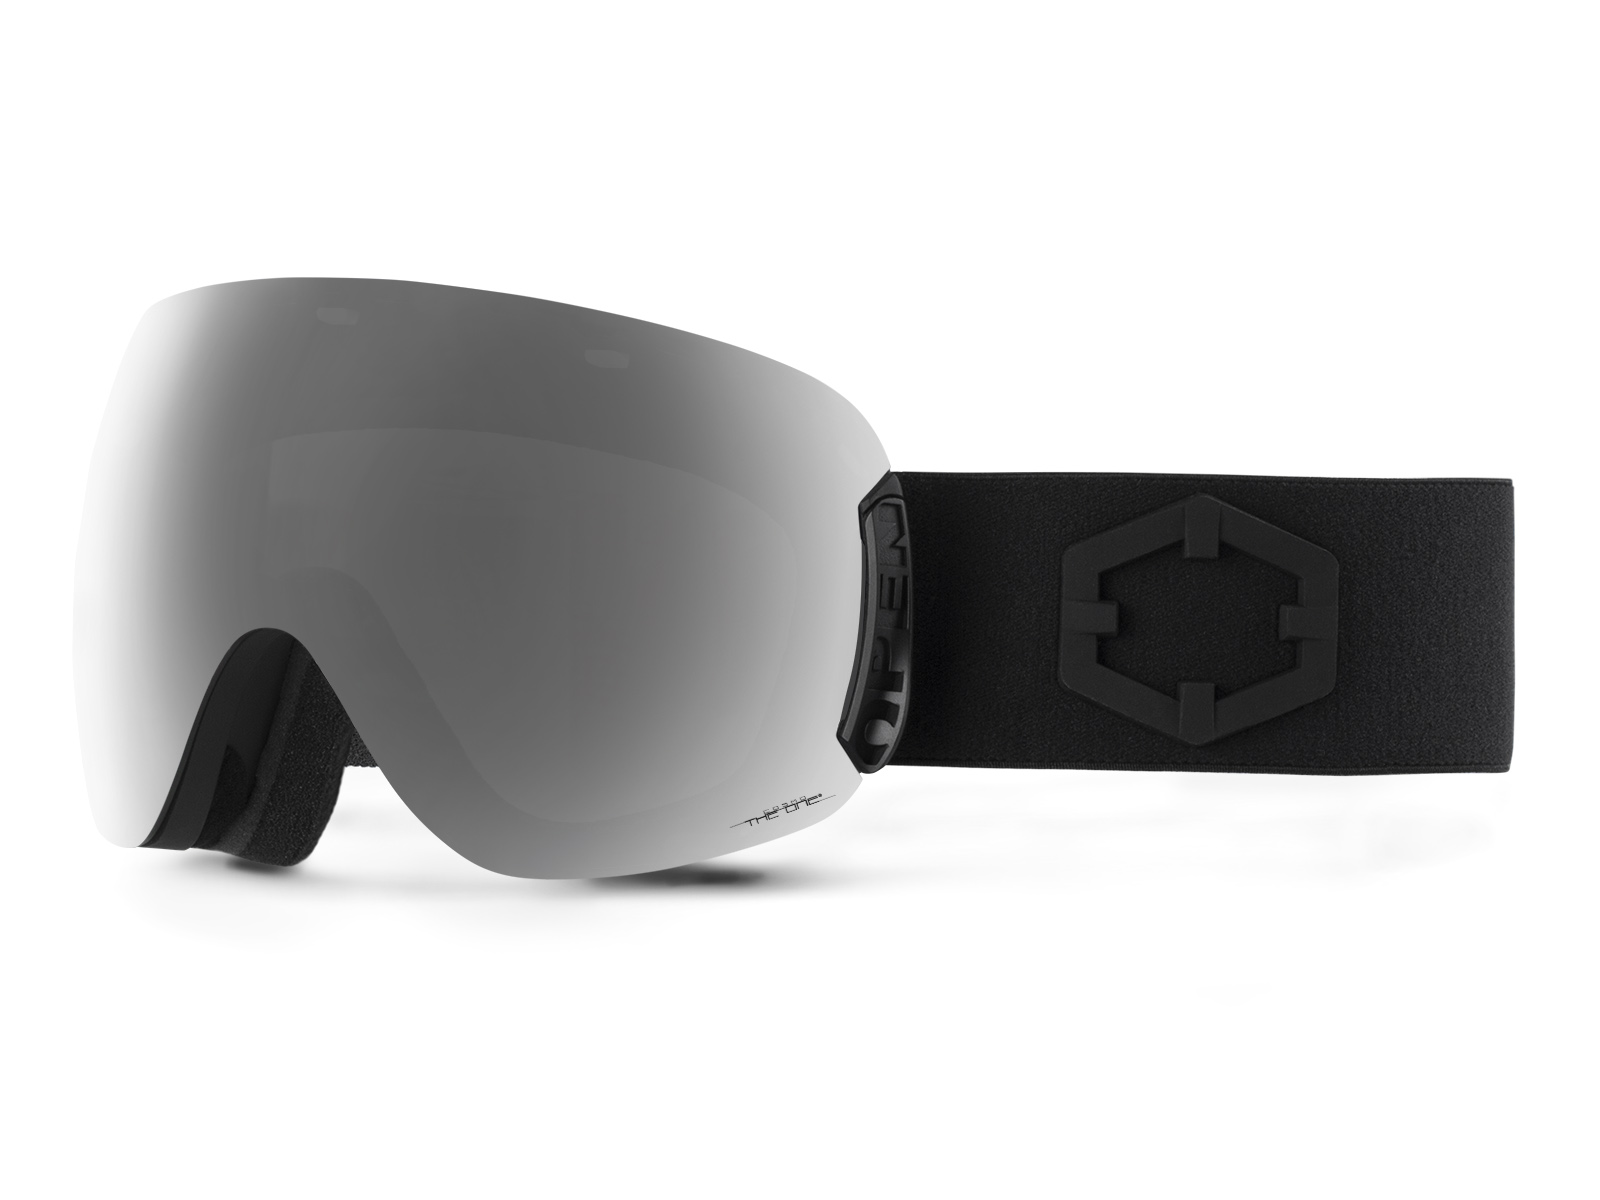 OPEN BLACK THE ONE COSMO GOGGLE